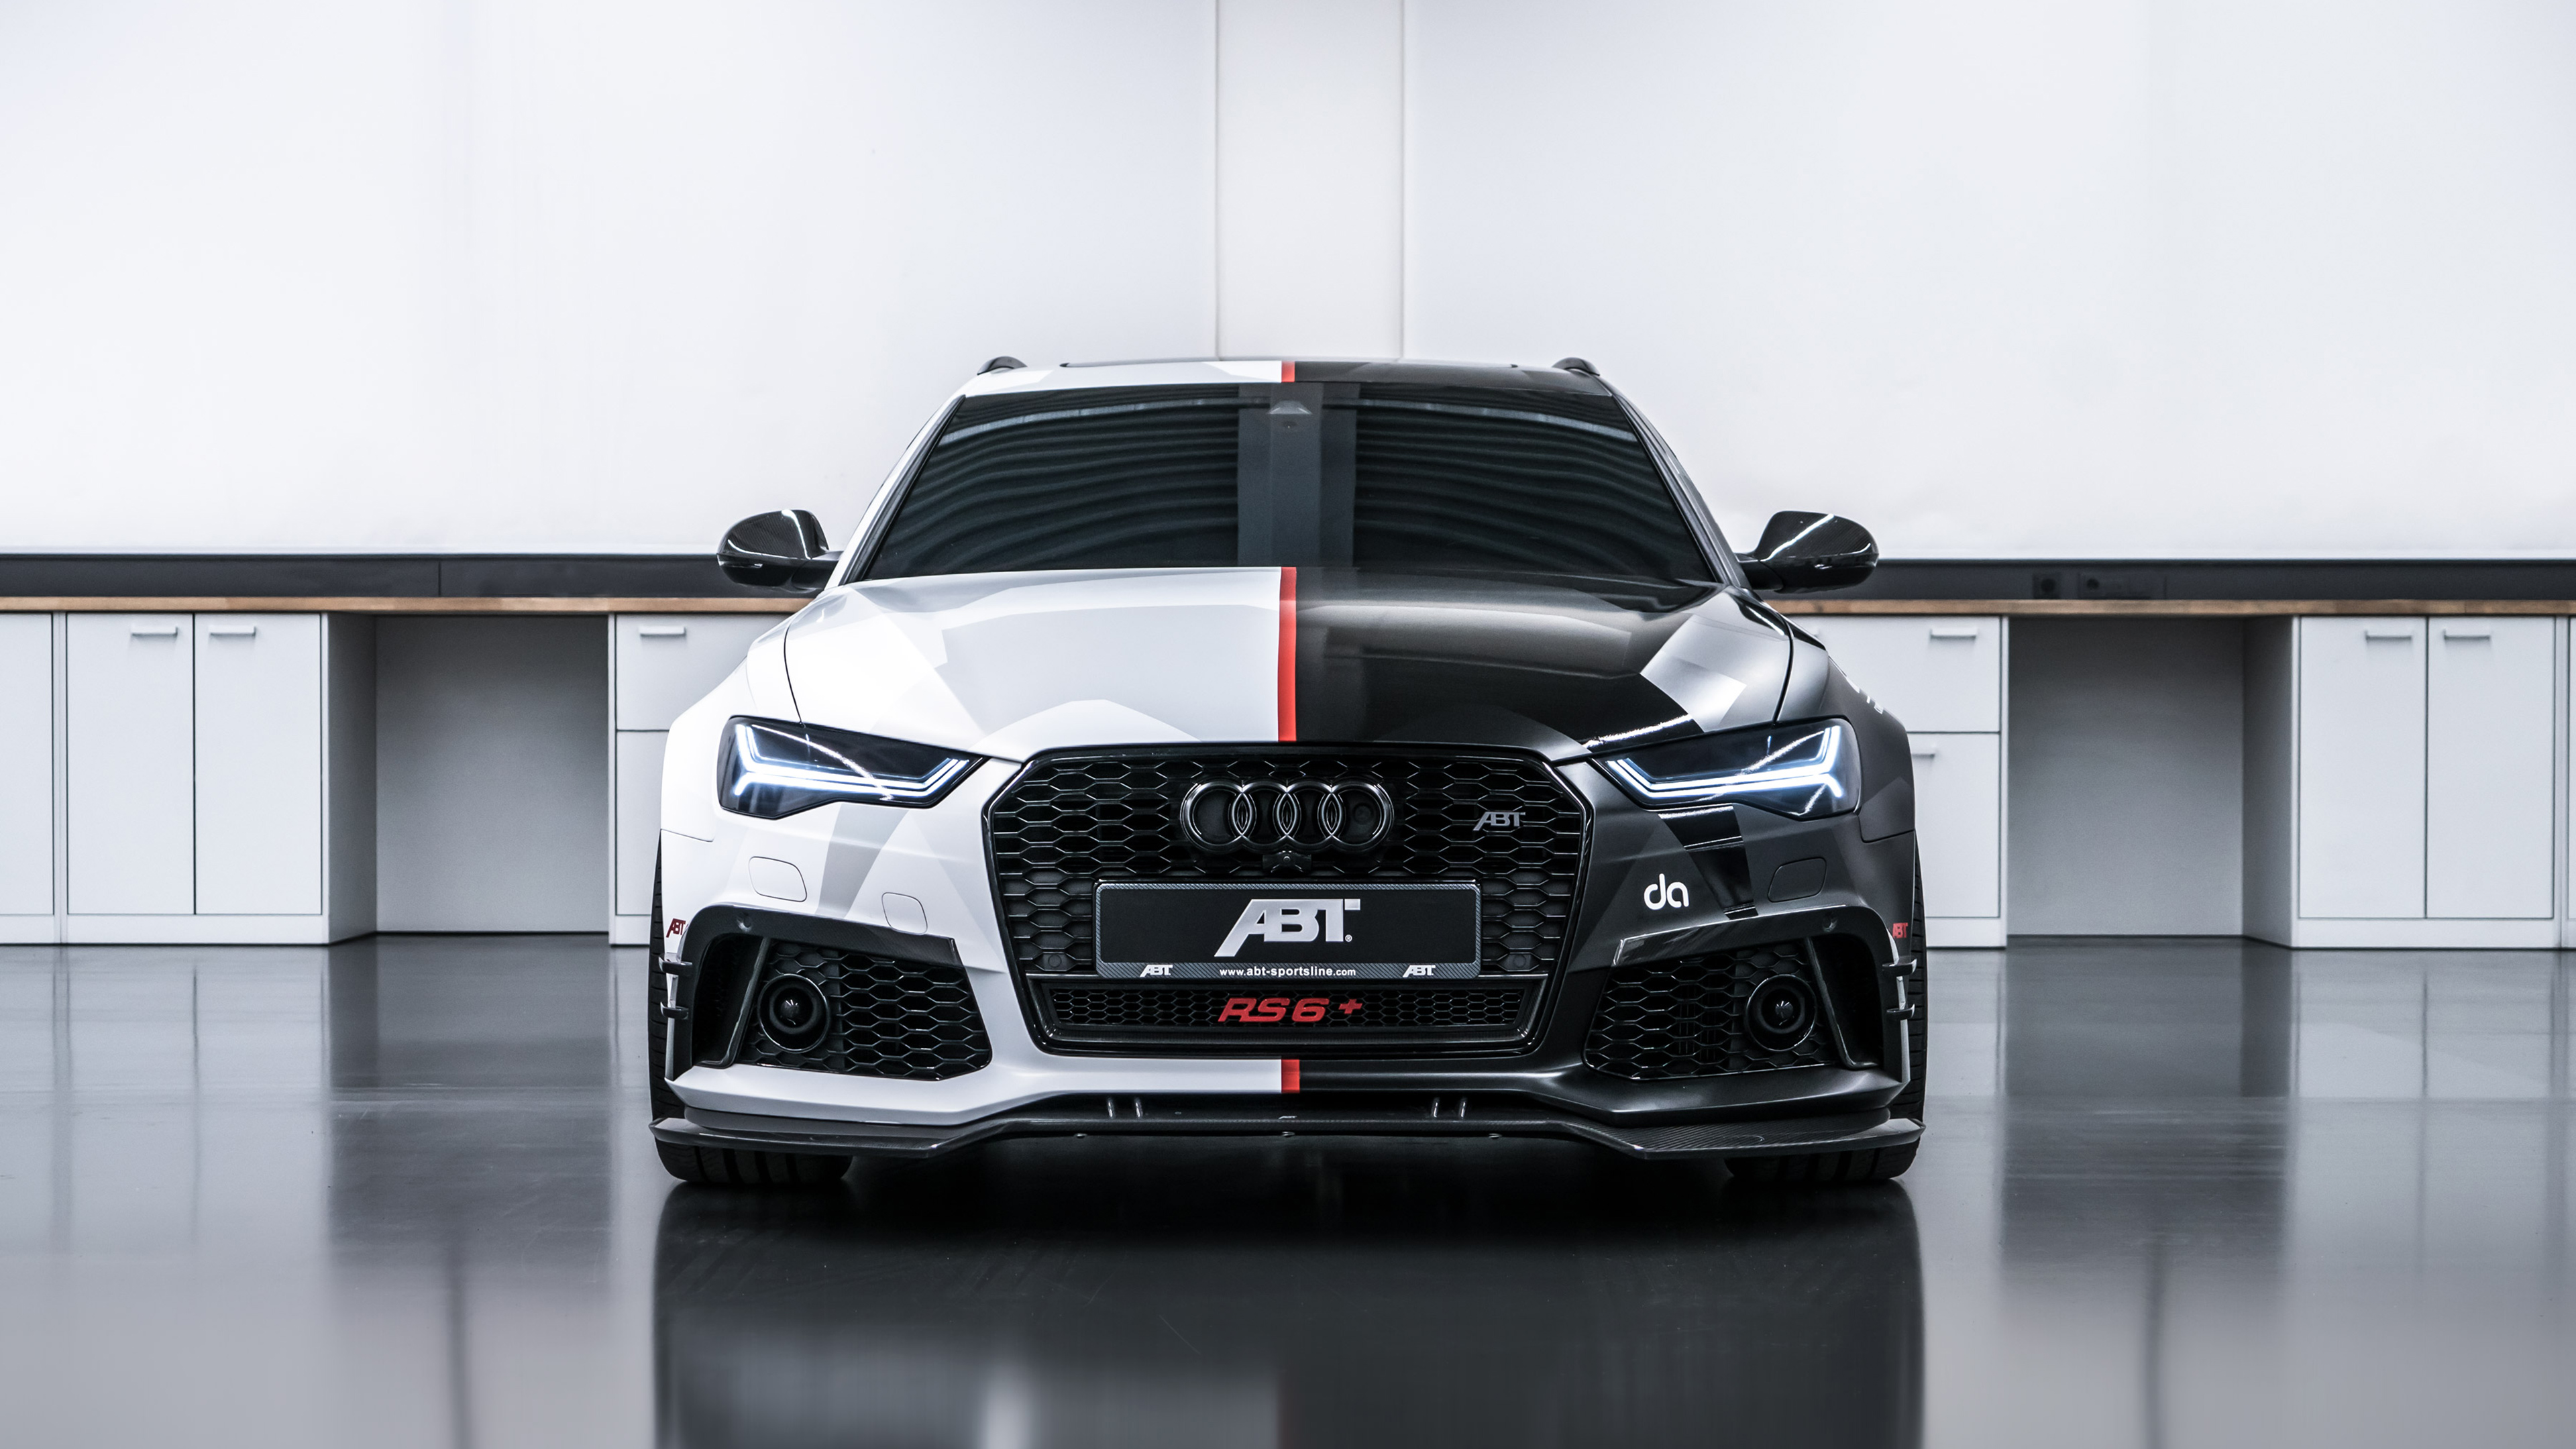 2018 Abt Audi Rs6 Avant For Jon Olsson 4k 3 Wallpaper Hd Car